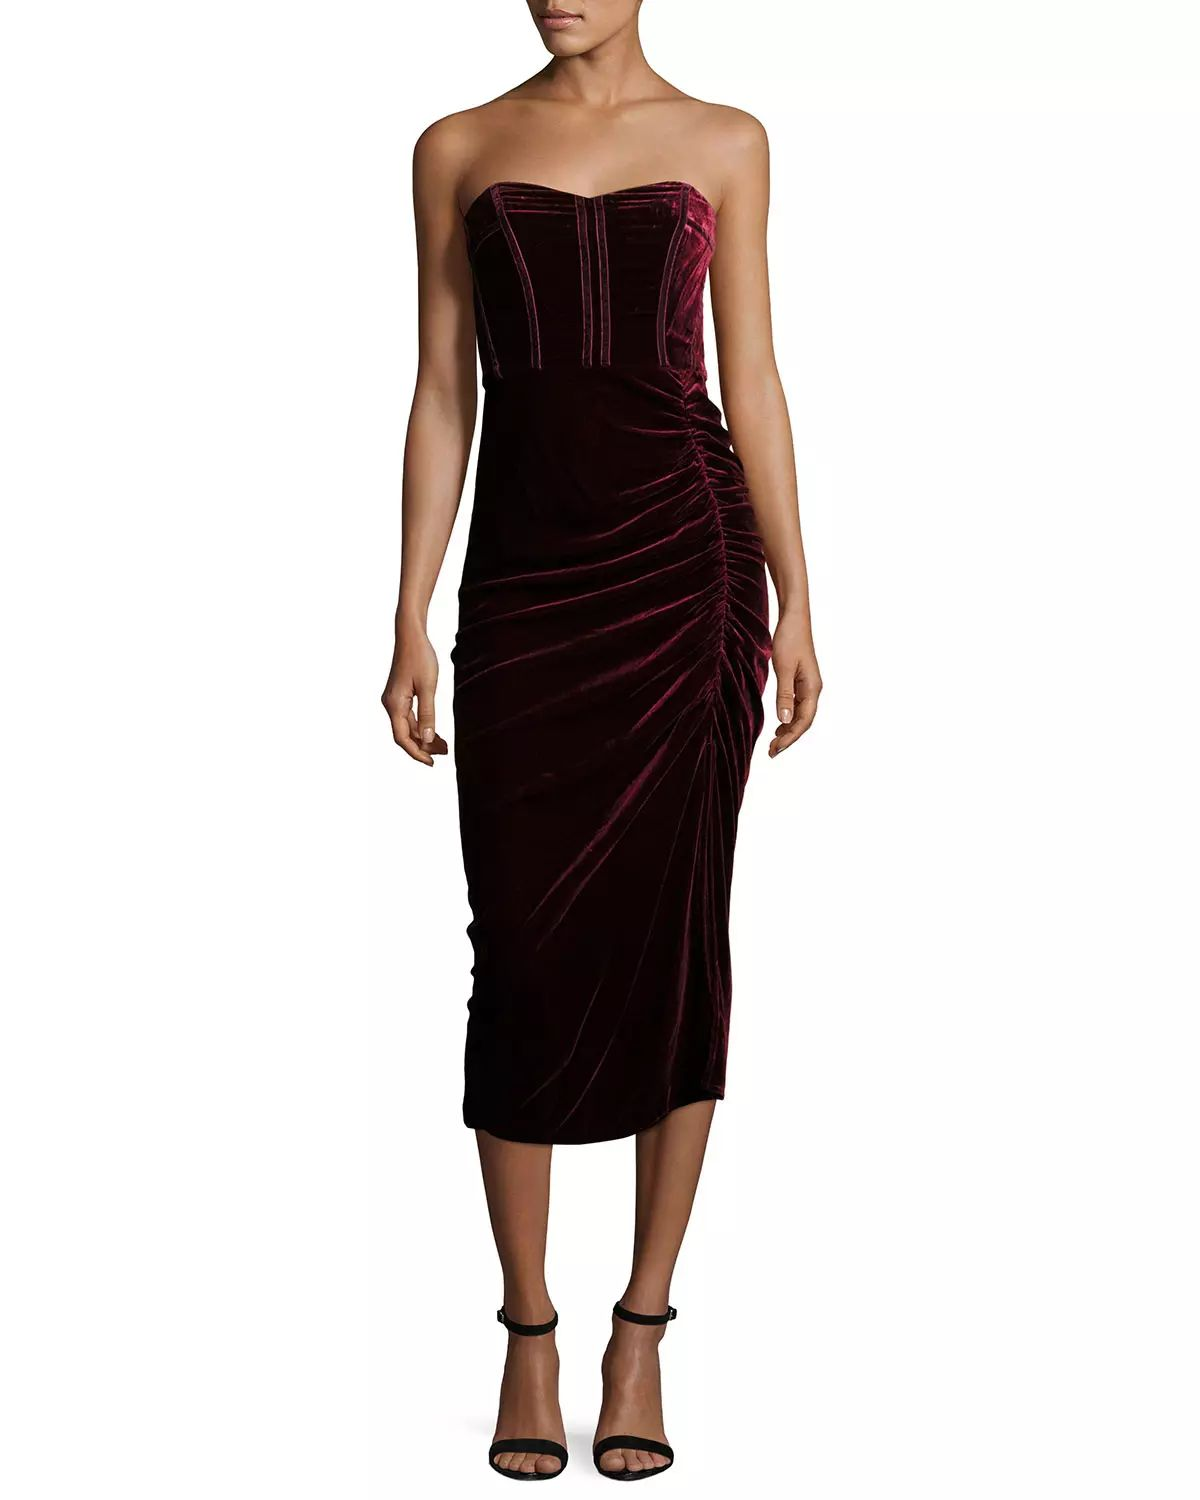 Veronica Beard, Plaza Strapless Velvet Midi Dress, Wine, $695